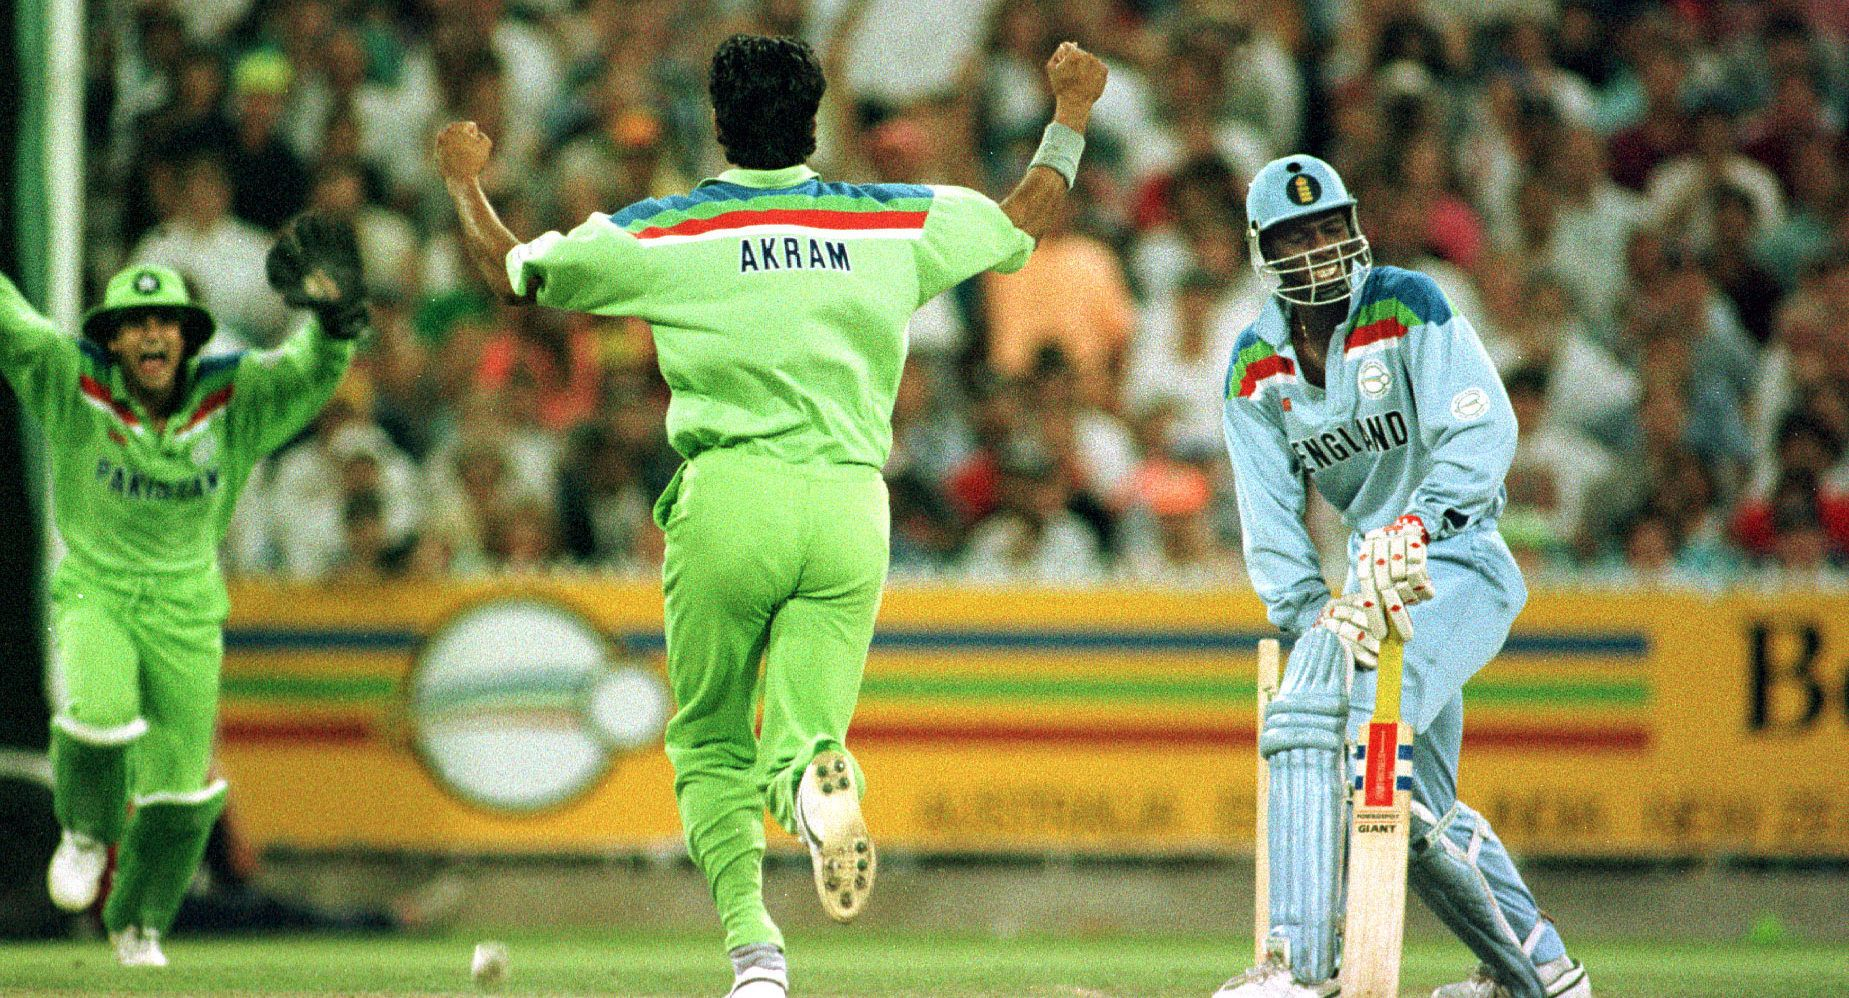 Wasim Akram bowls Chris Lewis with a ripper in the 1992 World Cup final.